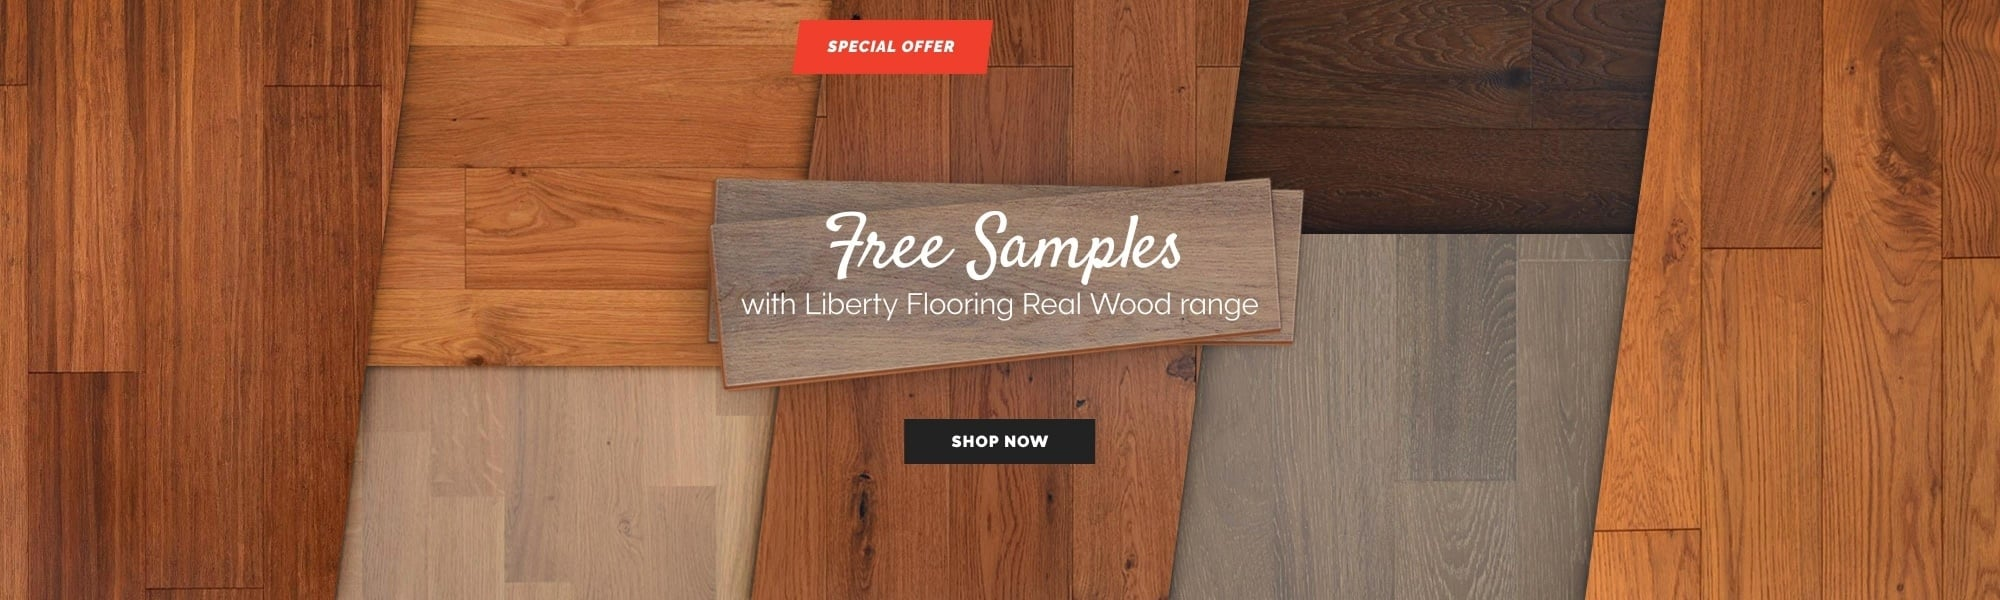 Free Samples with Liberty Flooring Real Wood